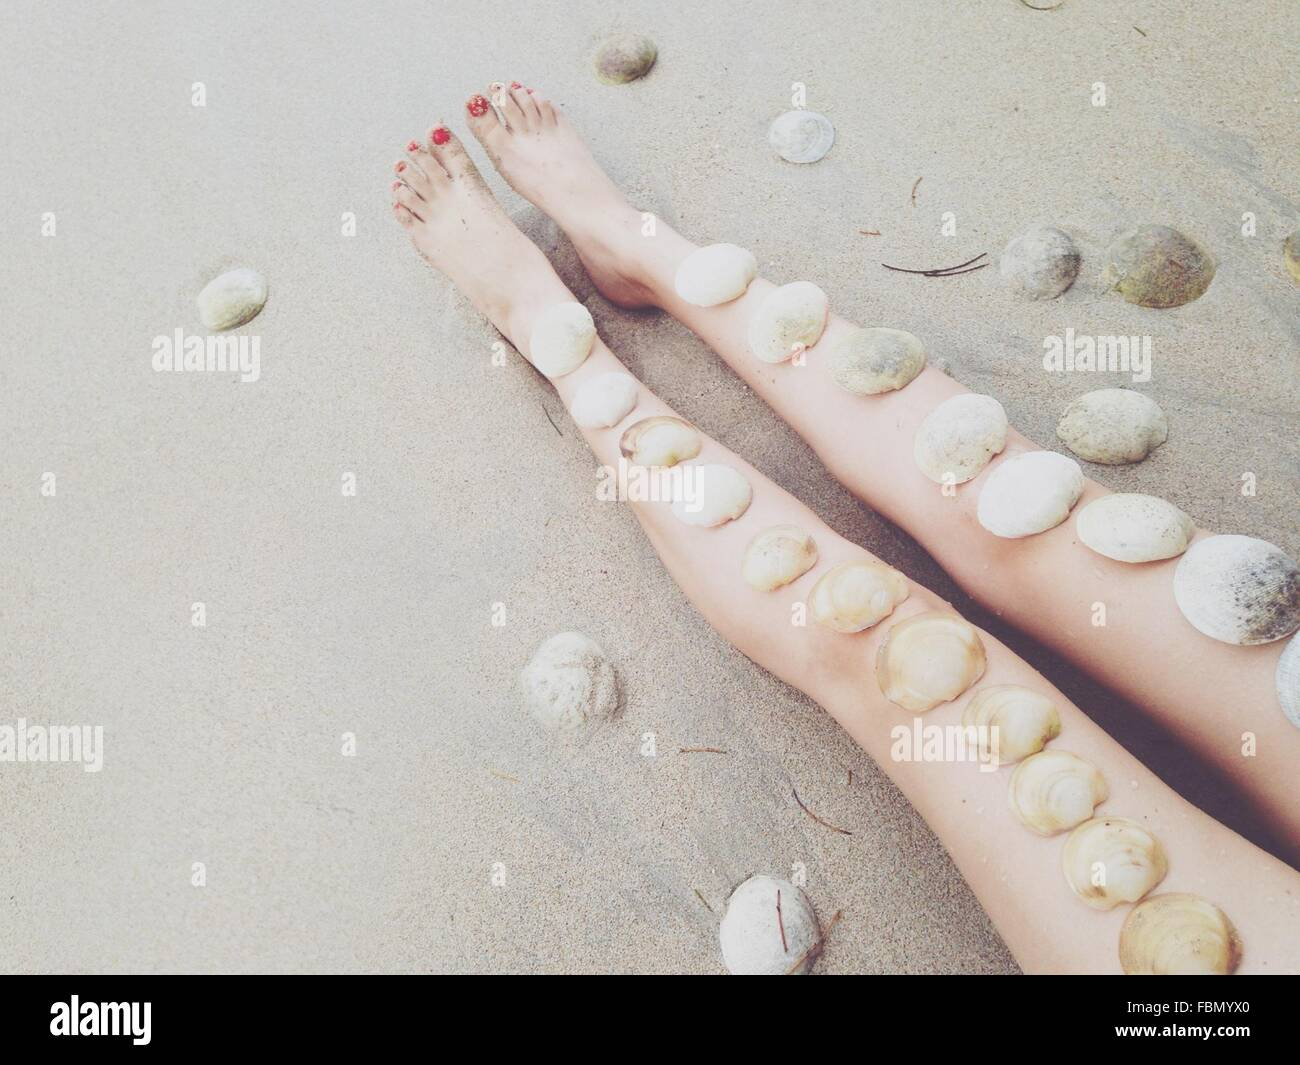 Coquillages sur une jambe Femme Photo Stock